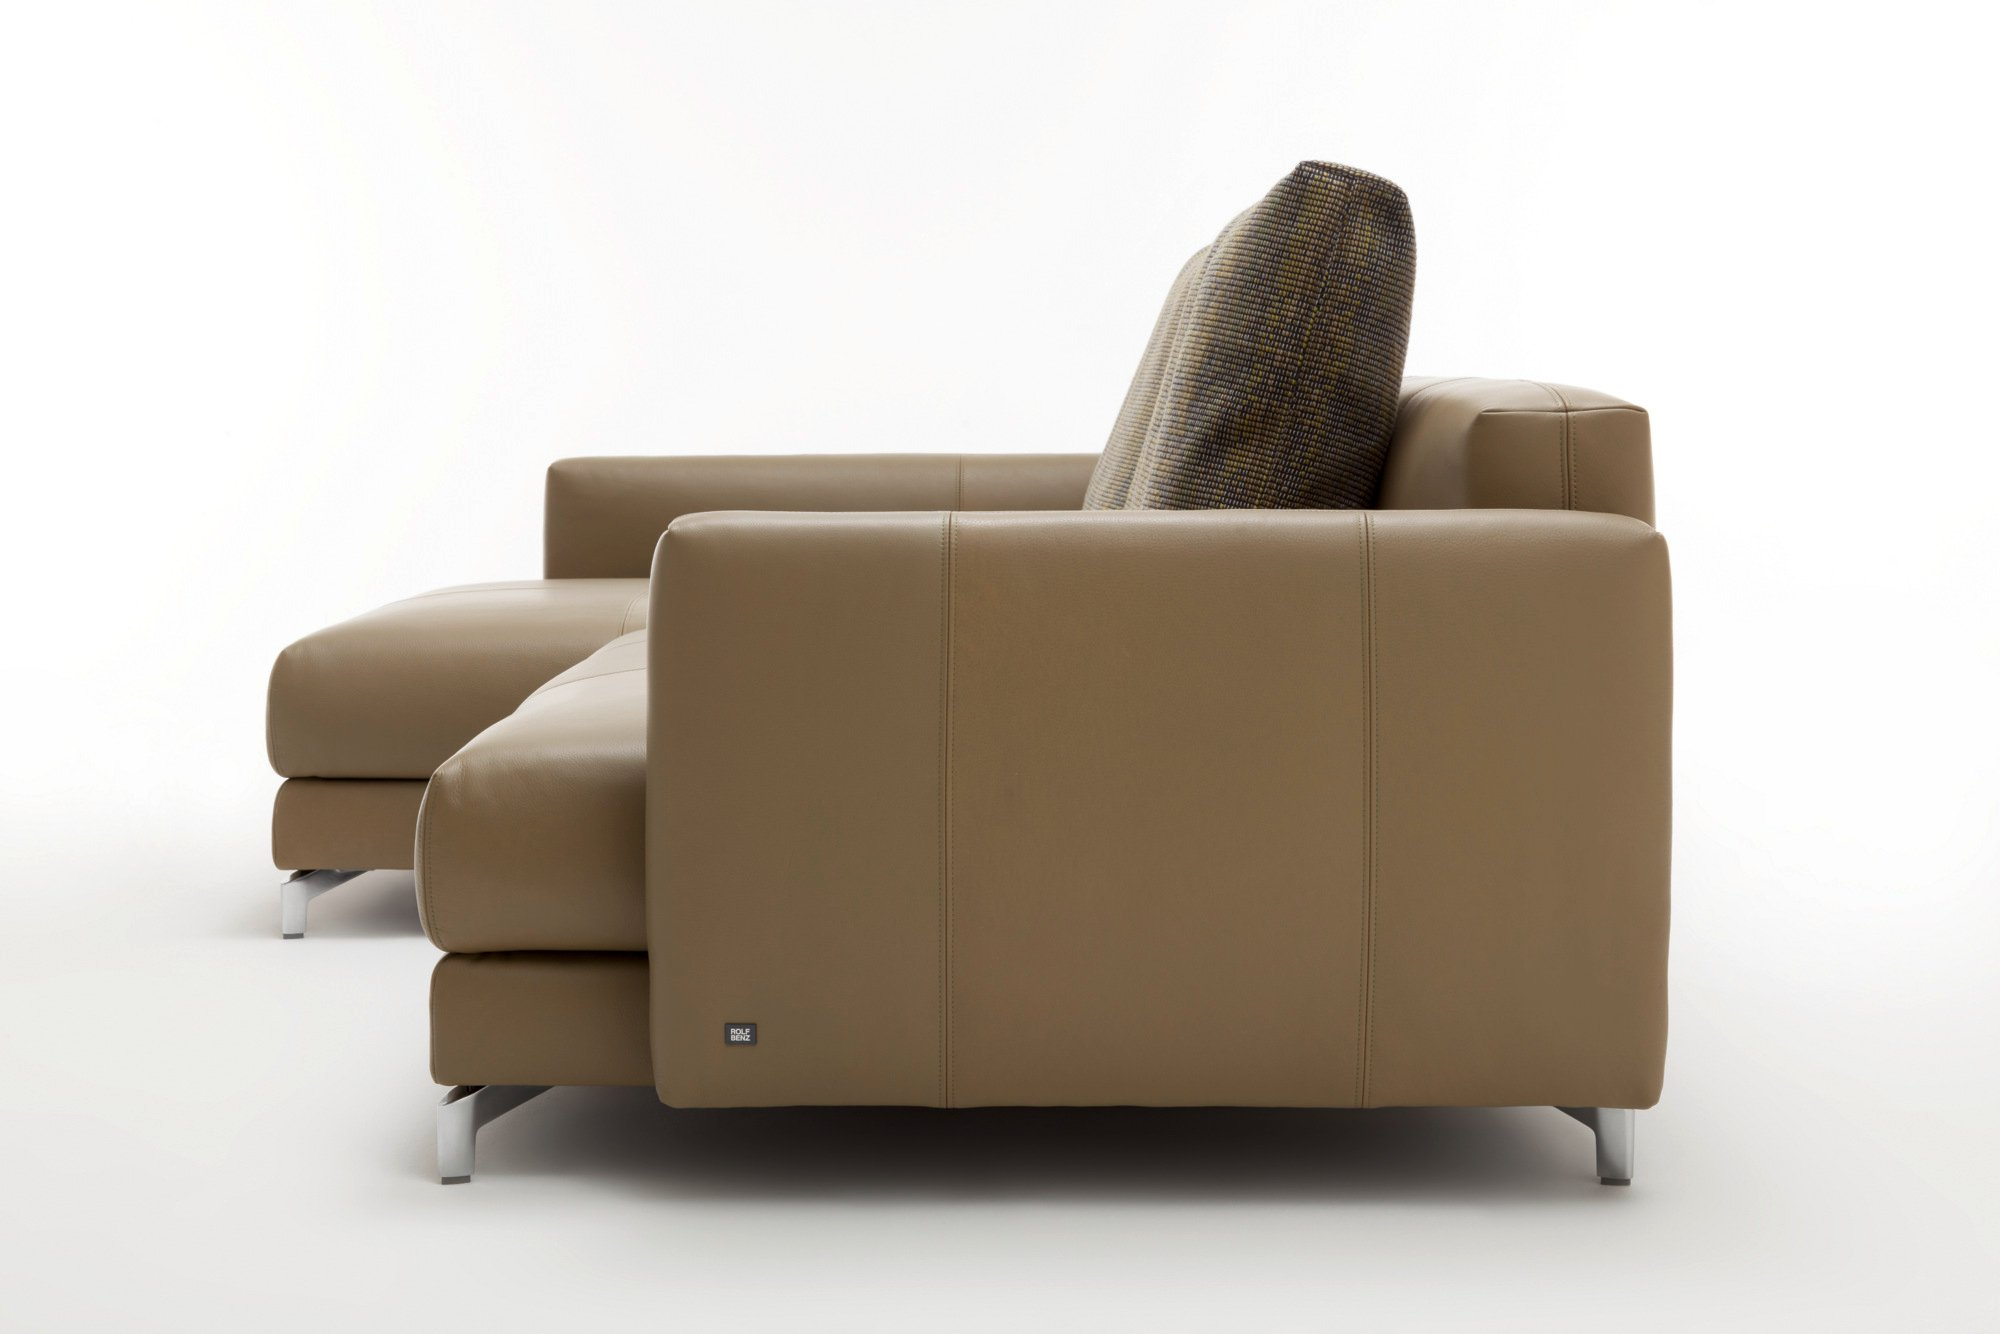 sectional leather sofa with chaise longue nuvola sofa with chaise longue by rolf benz. Black Bedroom Furniture Sets. Home Design Ideas